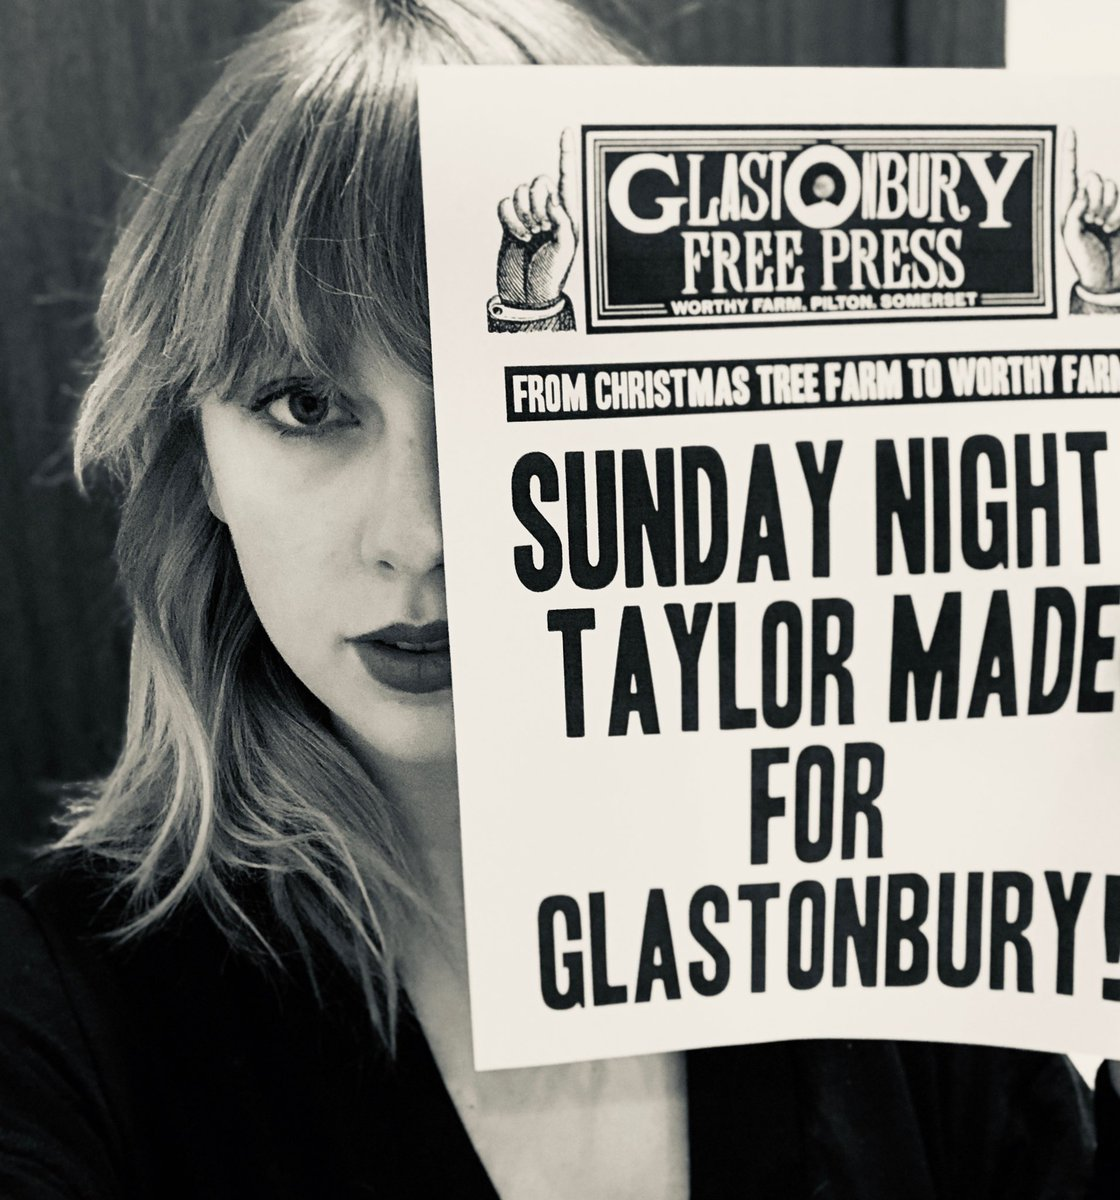 I'm ecstatic to tell you that I'll be headlining Glastonbury on its 50th anniversary - See you there! 💋 https://t.co/2gJ40mEiDH